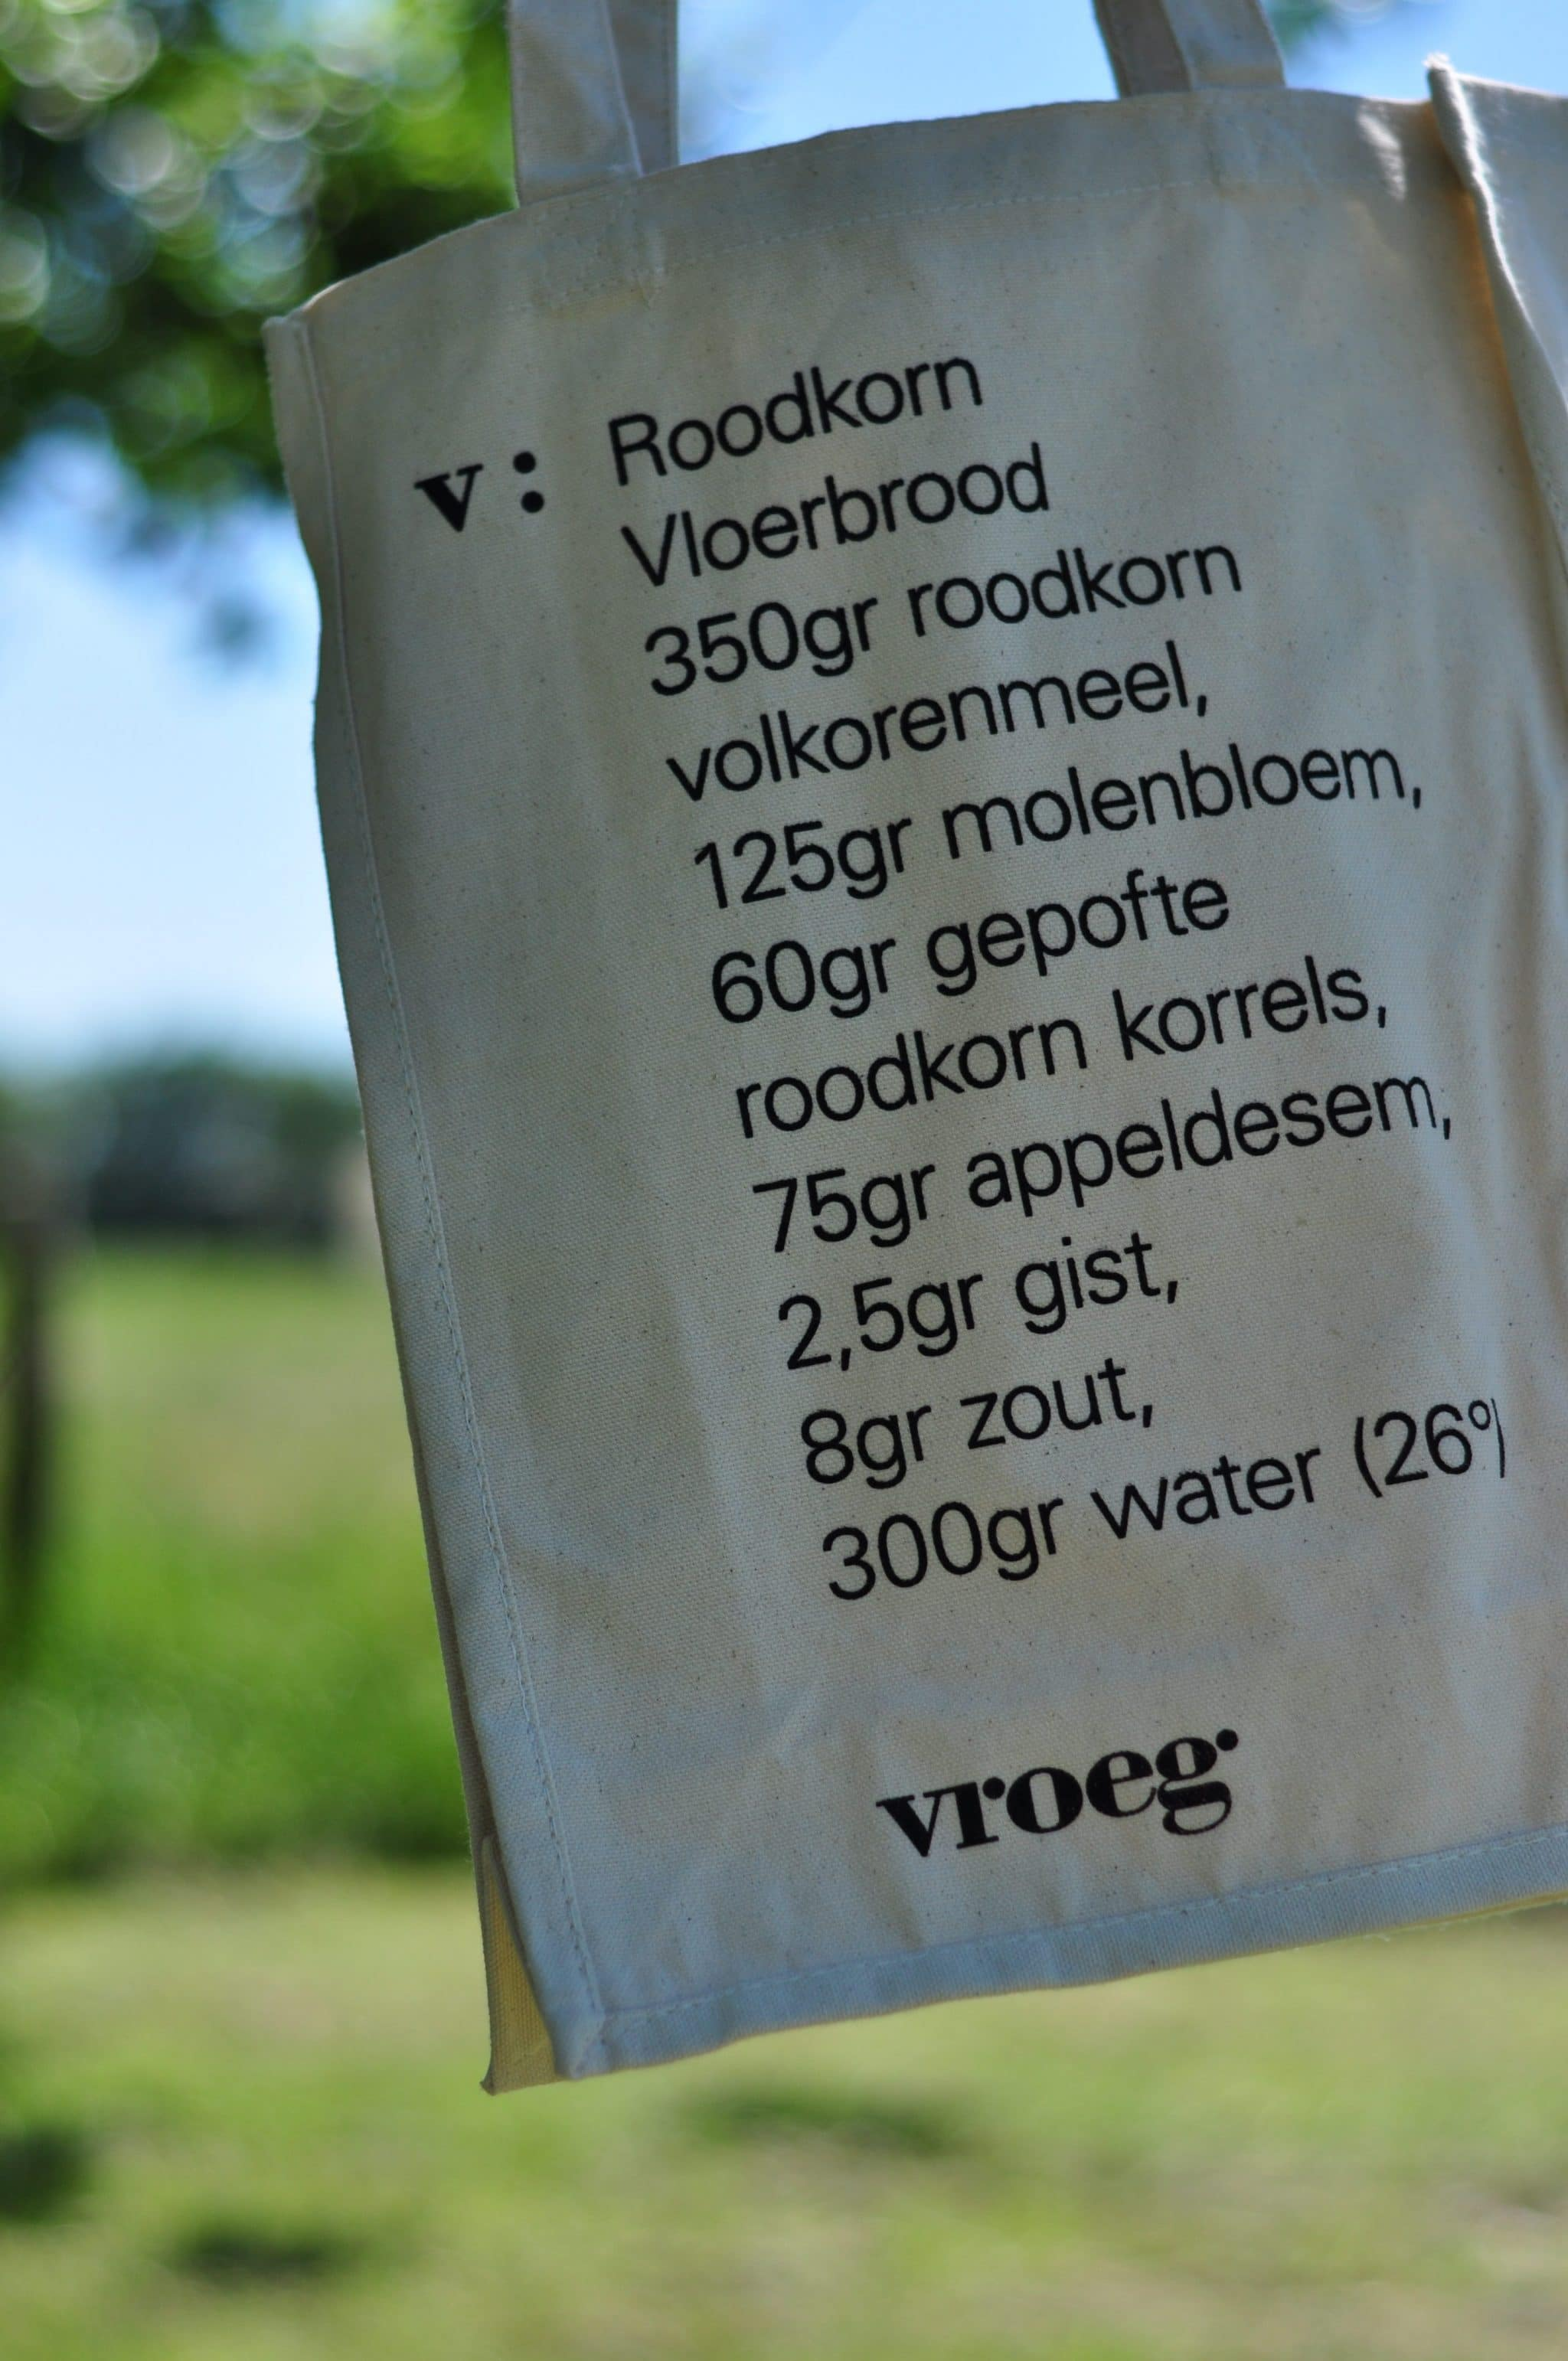 retail vroeg bag bread recipe